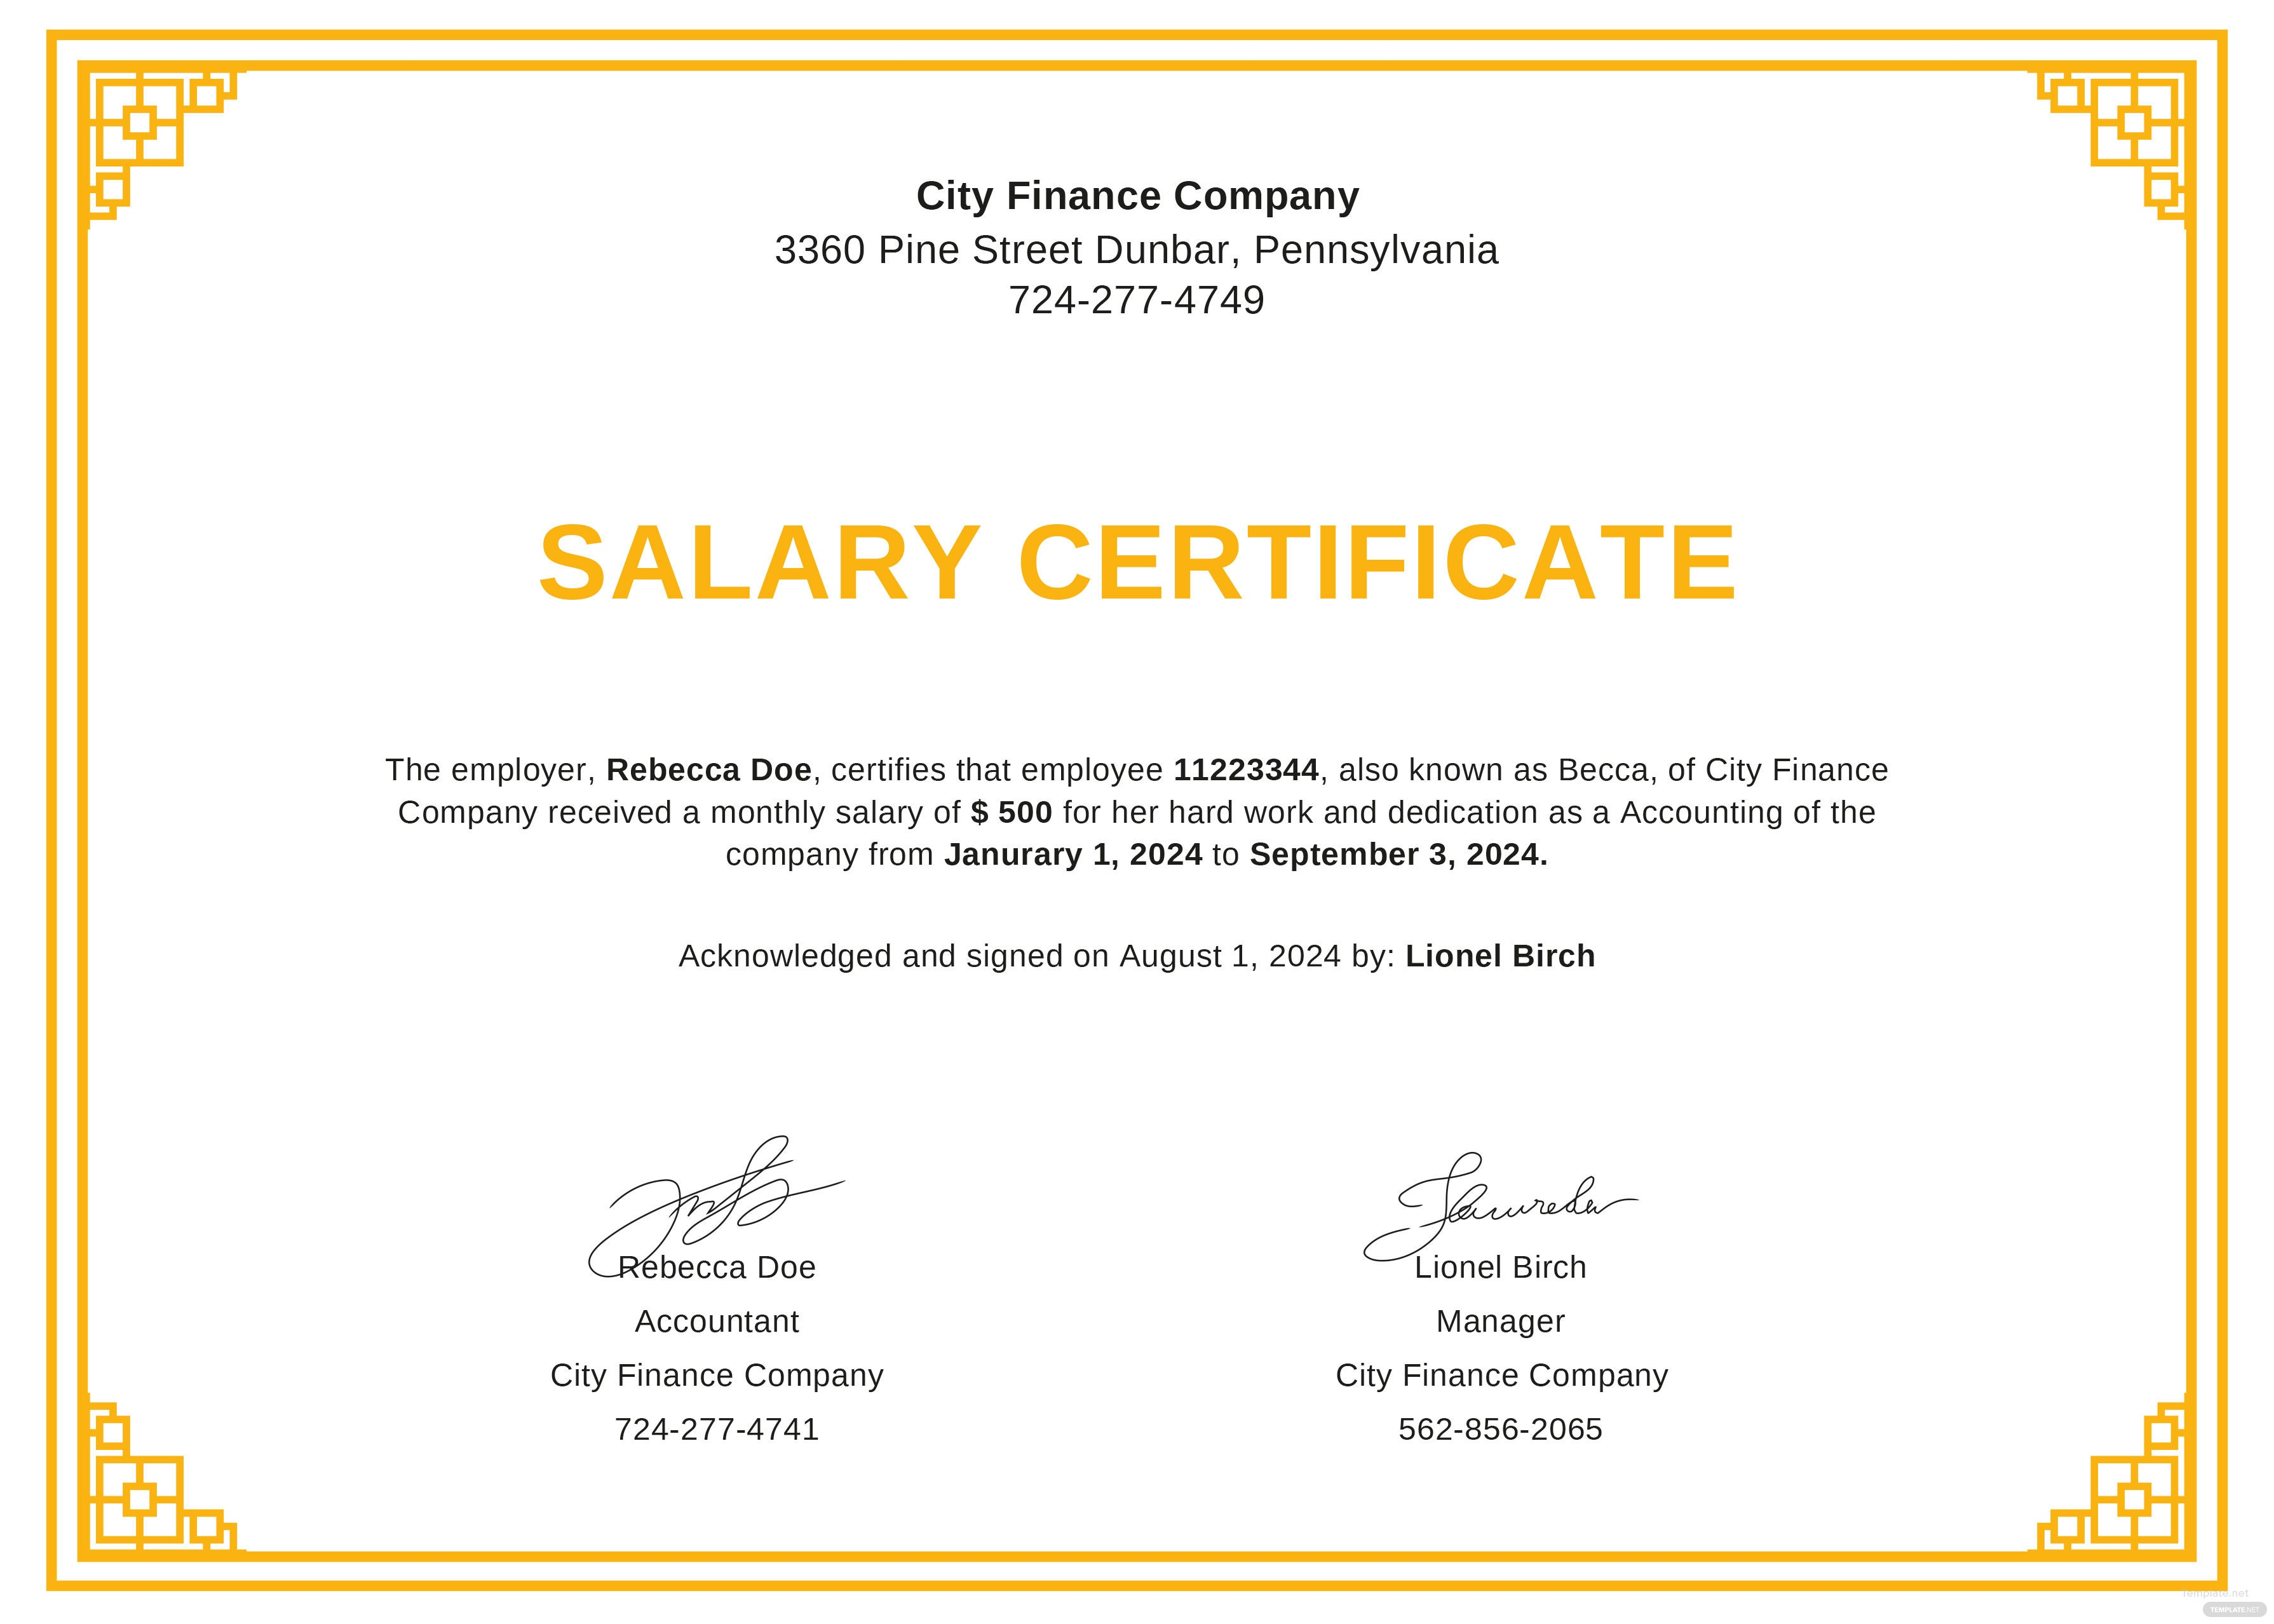 free salary certificate from employer template in microsoft word  microsoft publisher  adobe